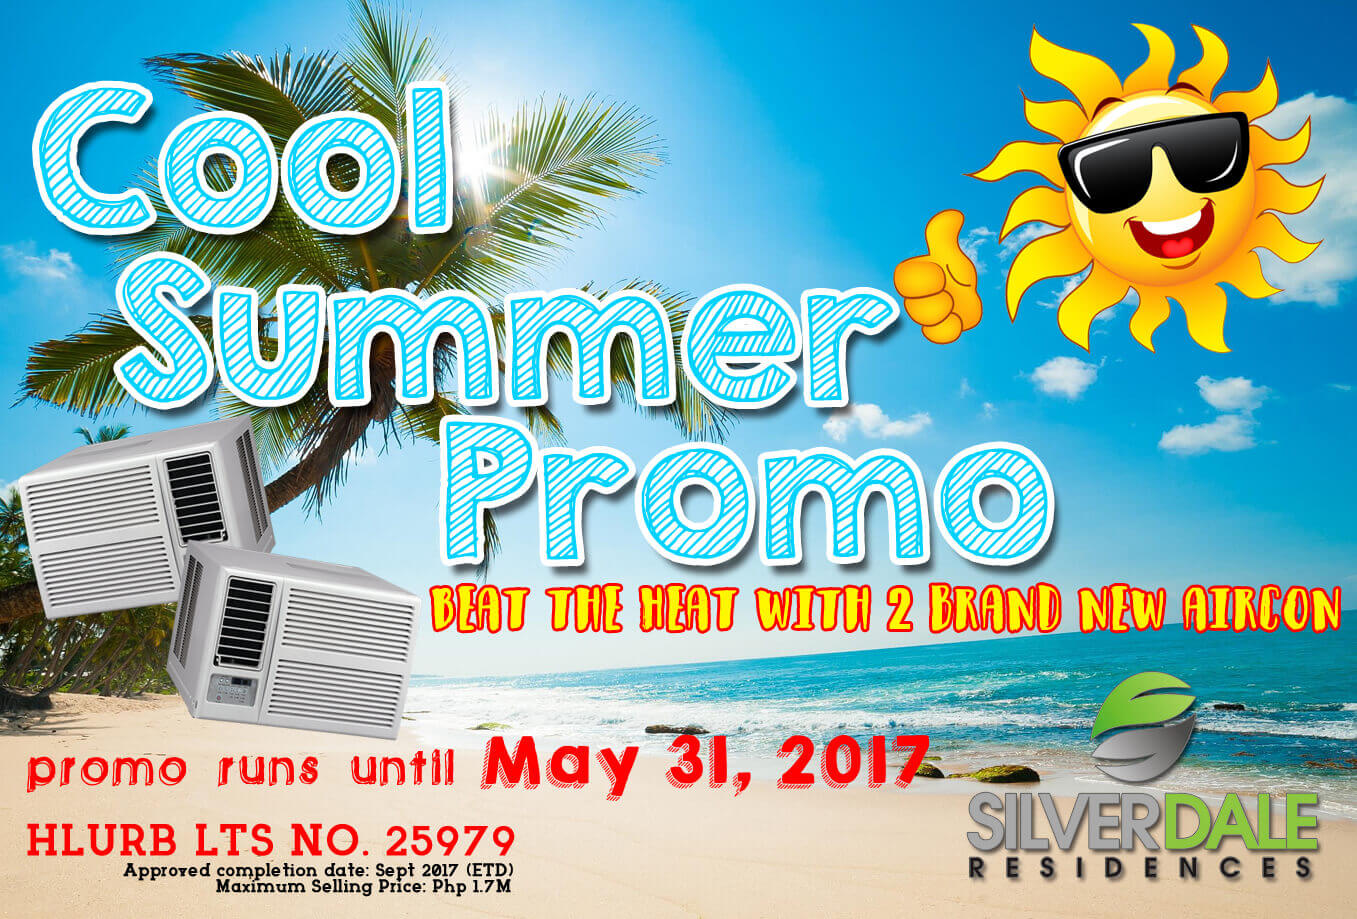 Silverdale Residences Cool Summer Promo